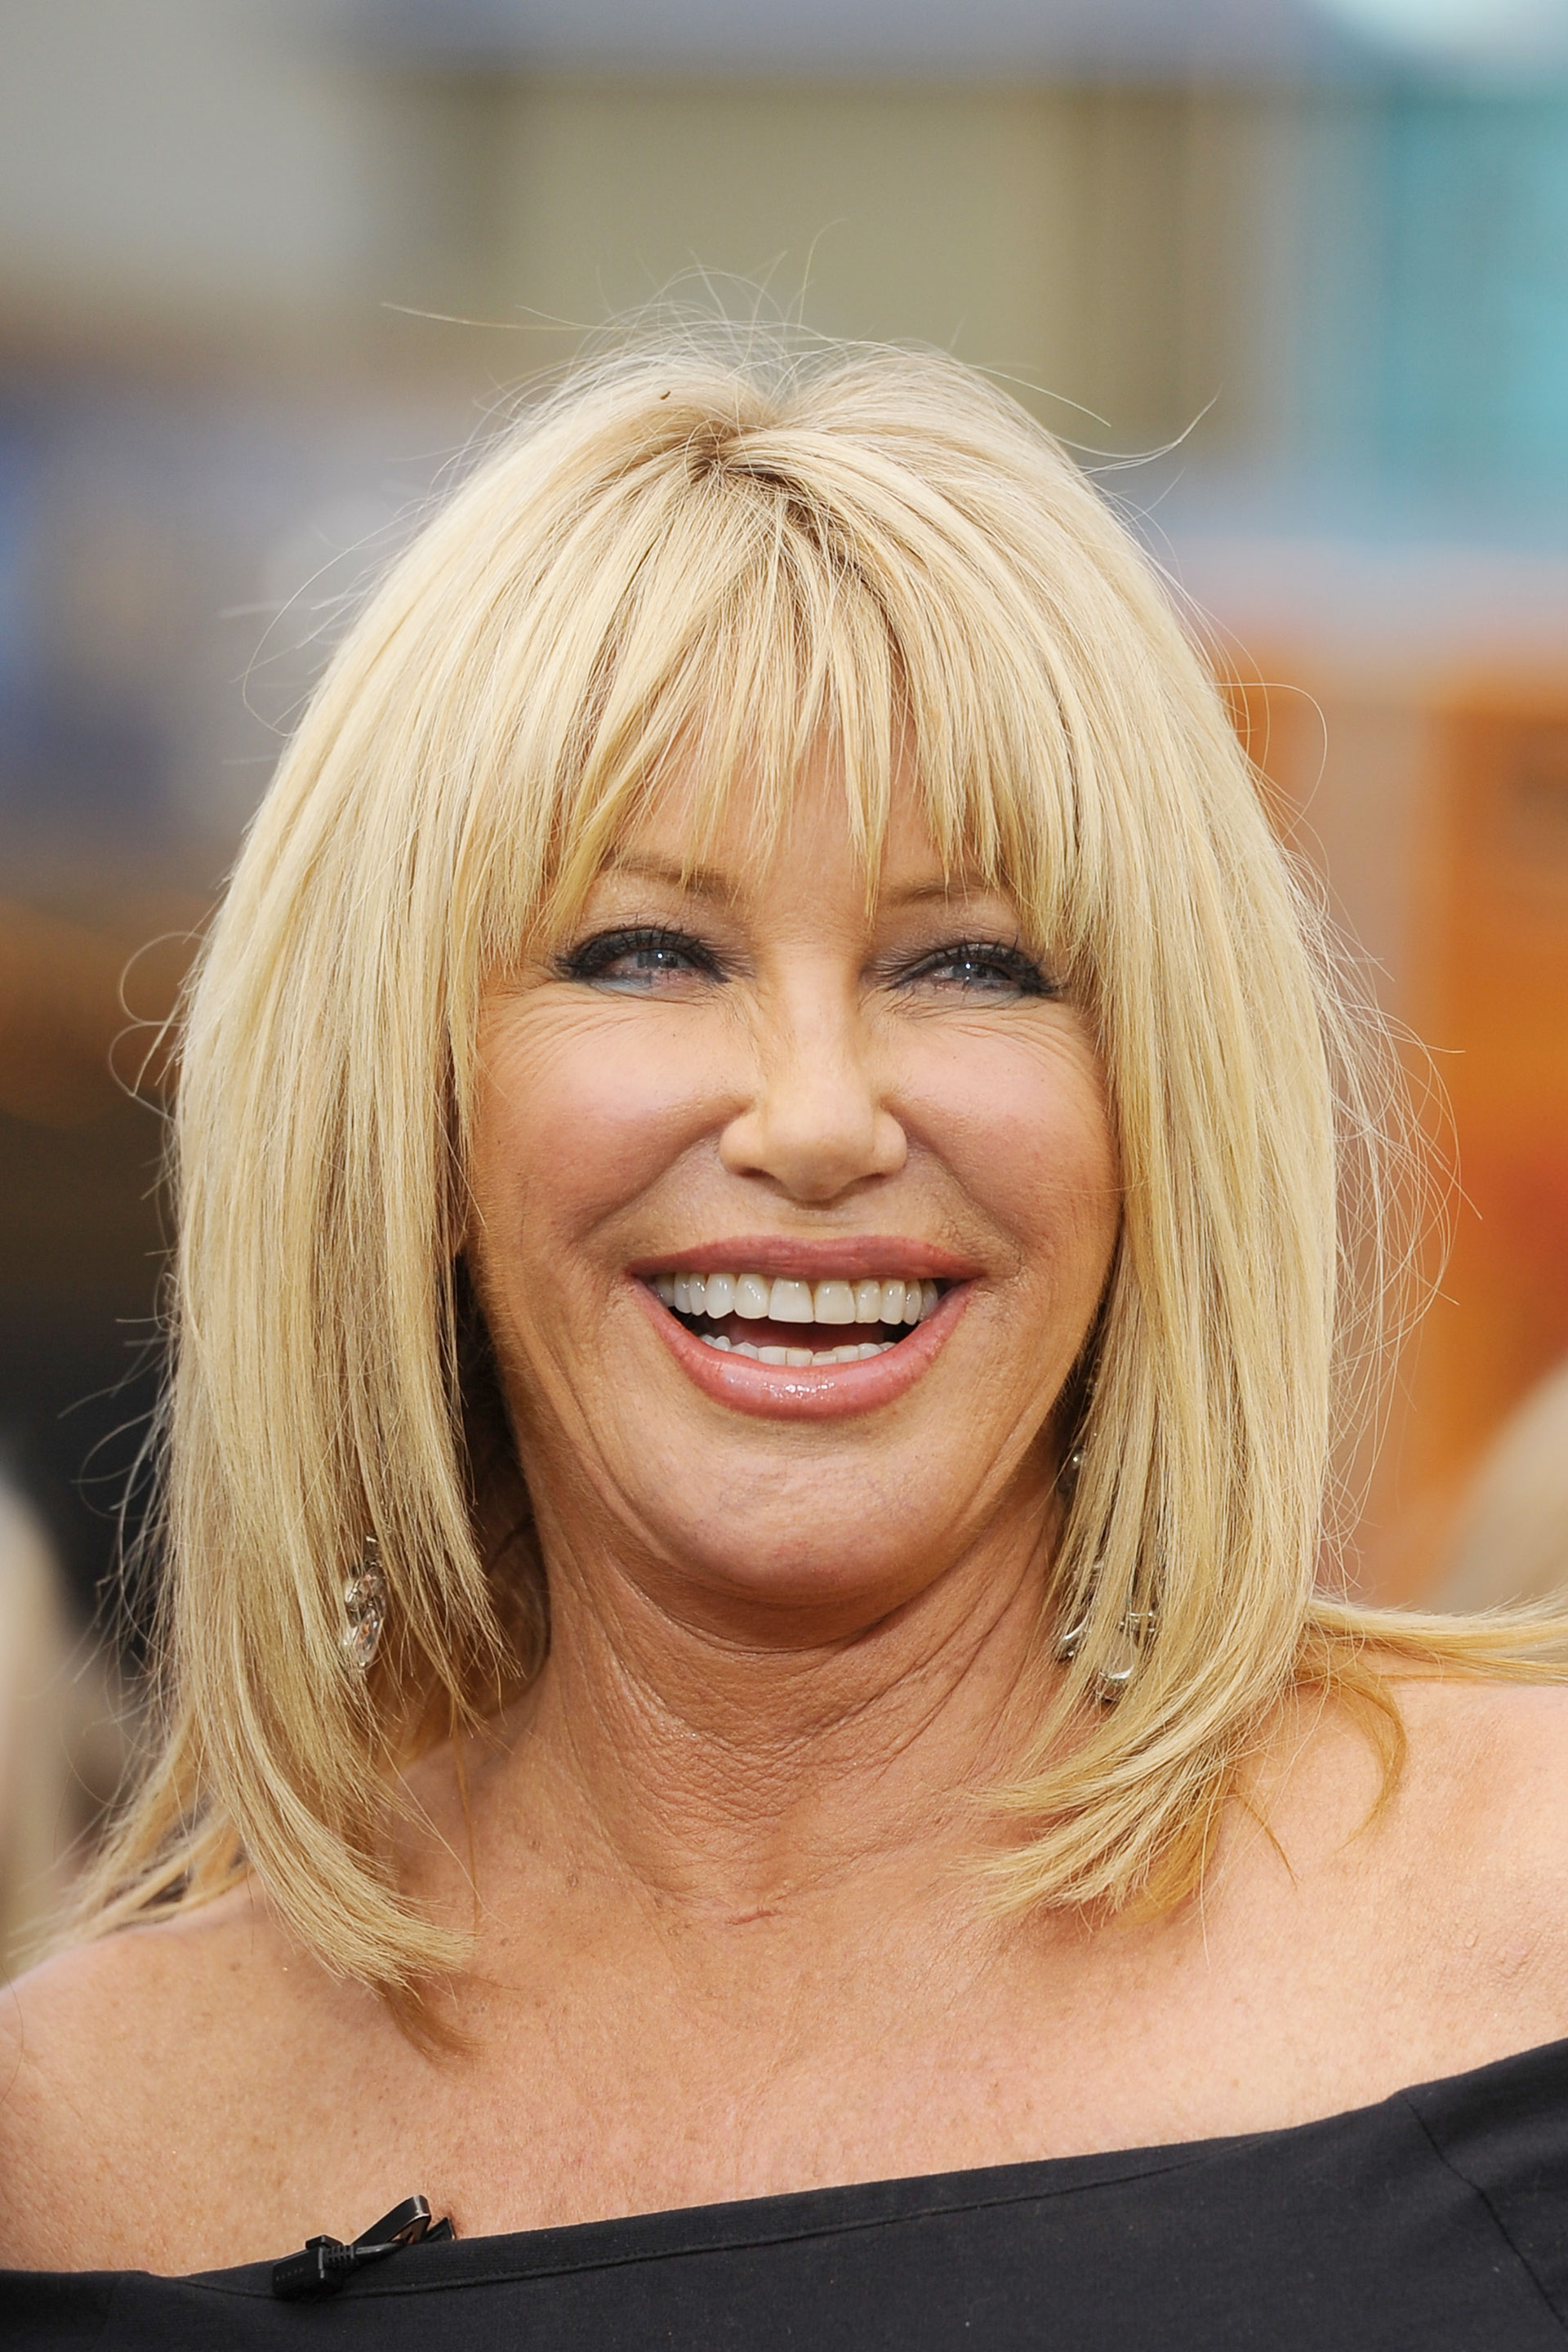 Stupendous Best Hairstyles For Women Over 50 Celebrity Haircuts Over 50 Short Hairstyles For Black Women Fulllsitofus